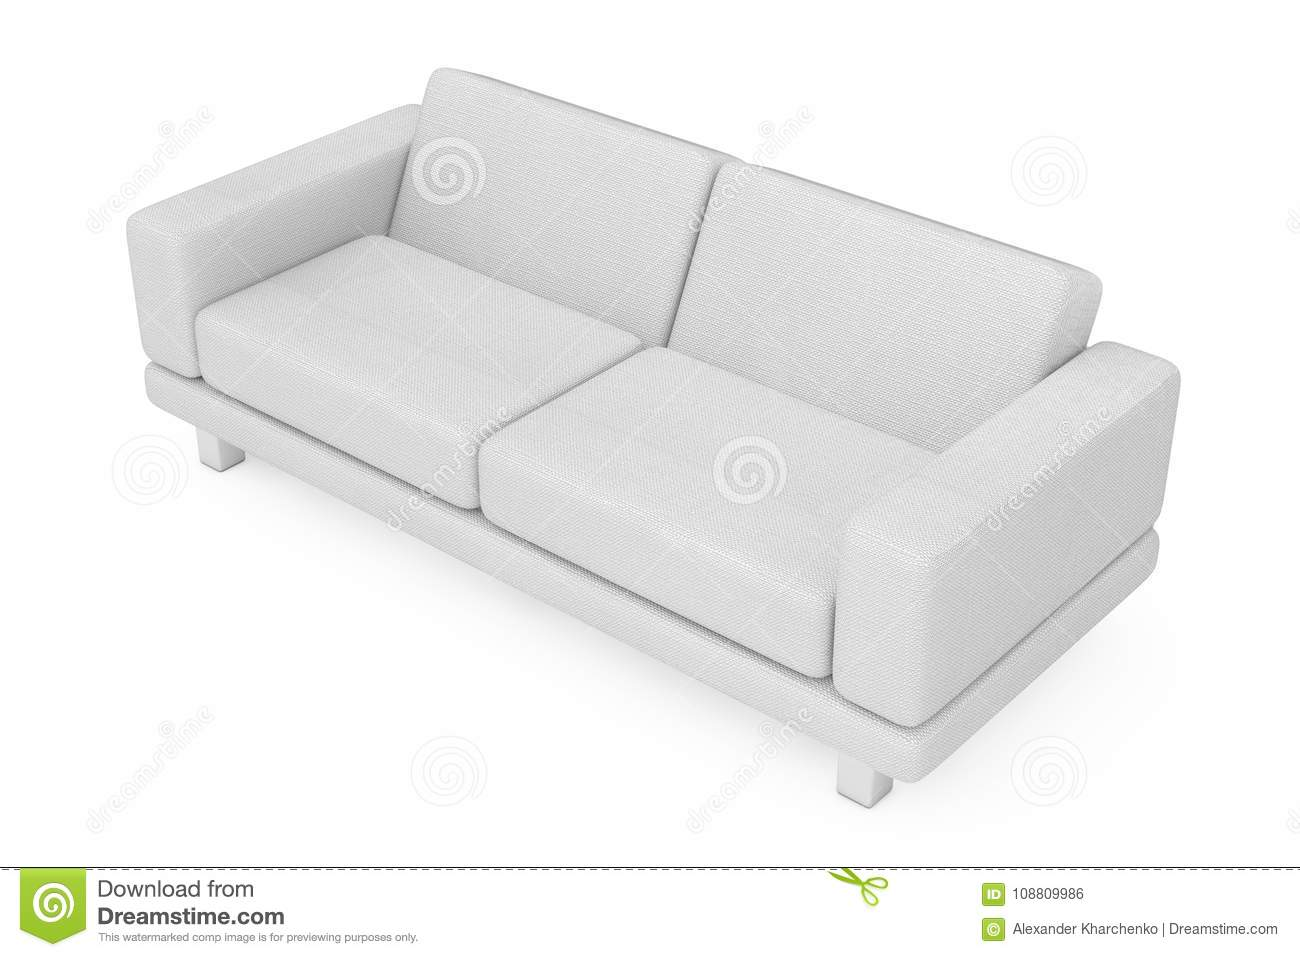 White simple modern sofa furniture on a white background 3d rendering